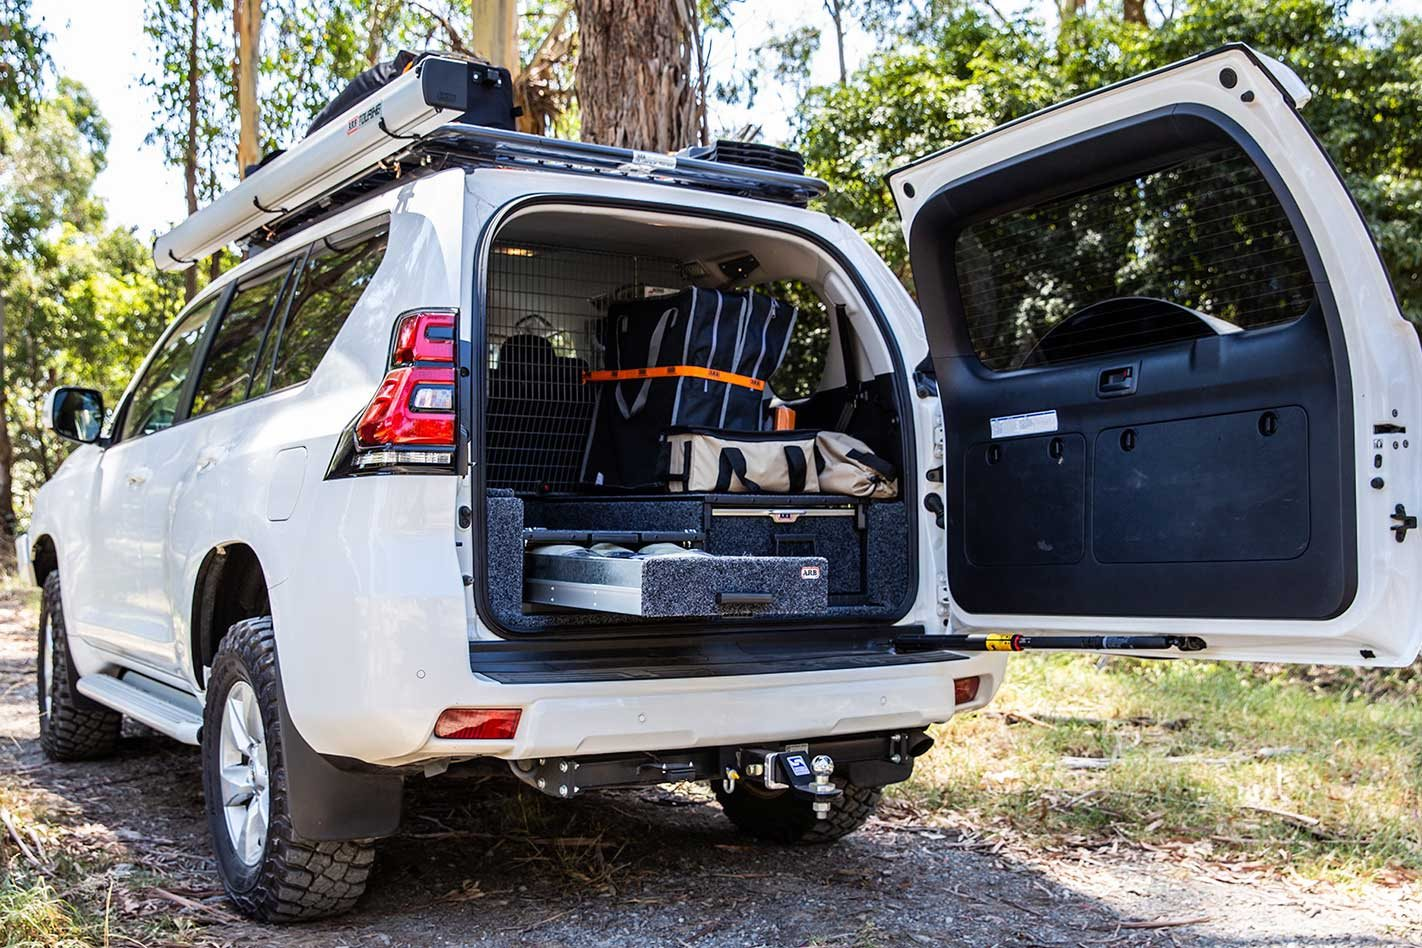 The best 4x4 gear of 2019